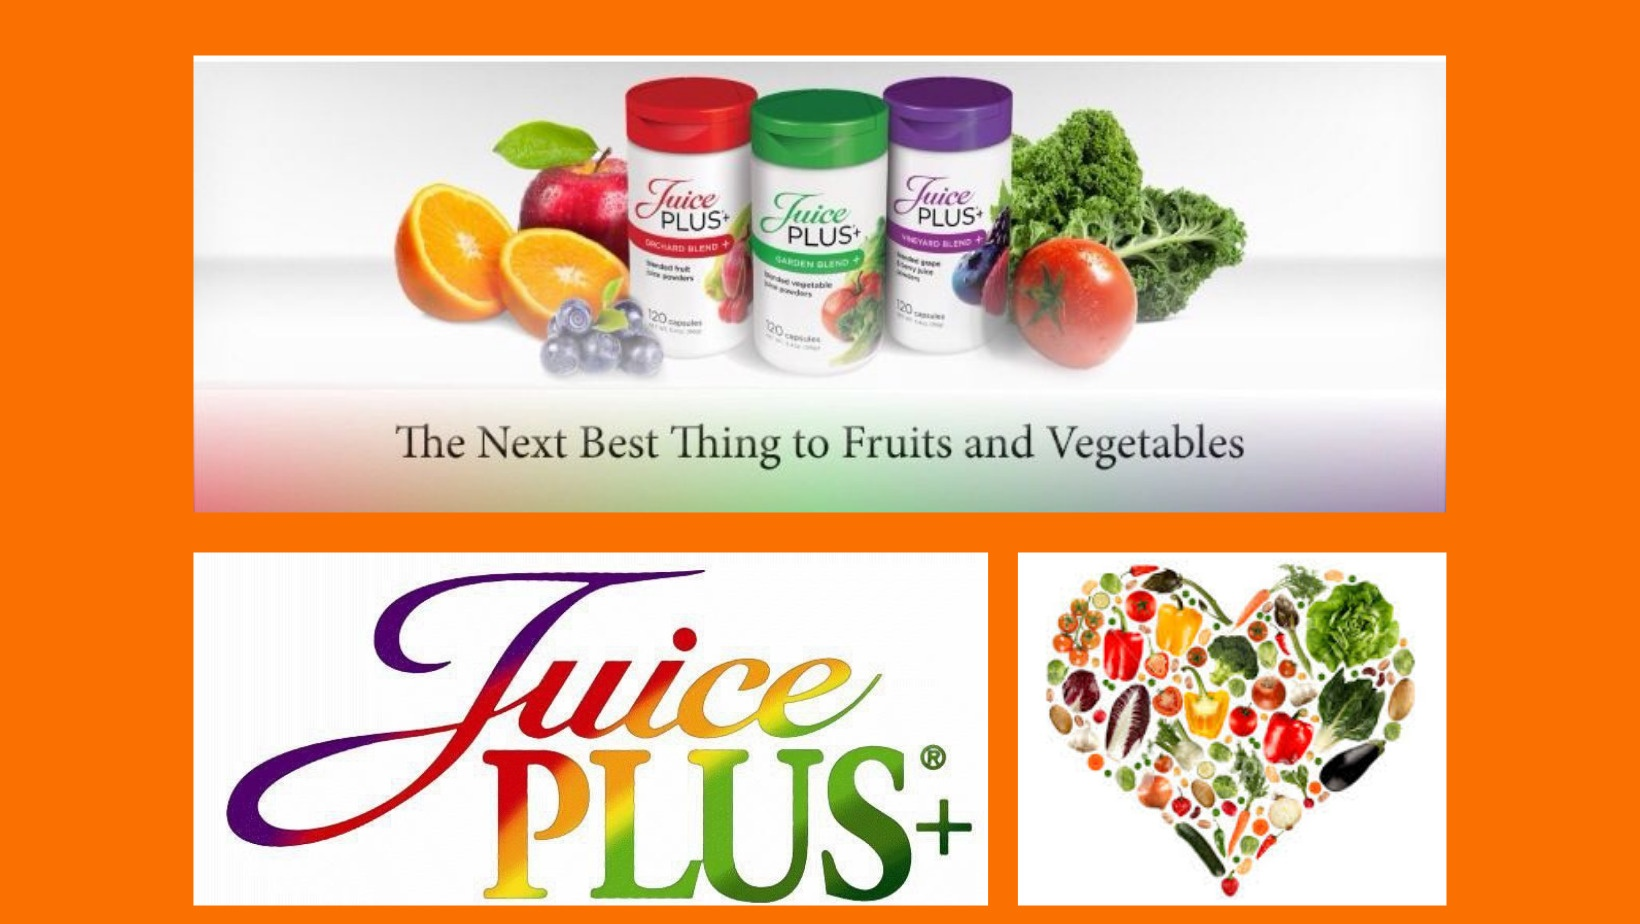 Wellness With A Plus on Rank In The City   Juice Plus+ Distributor   (800) 540-1920   Fruit and Vegetable Nutrition For A Healthy Lifestyle.